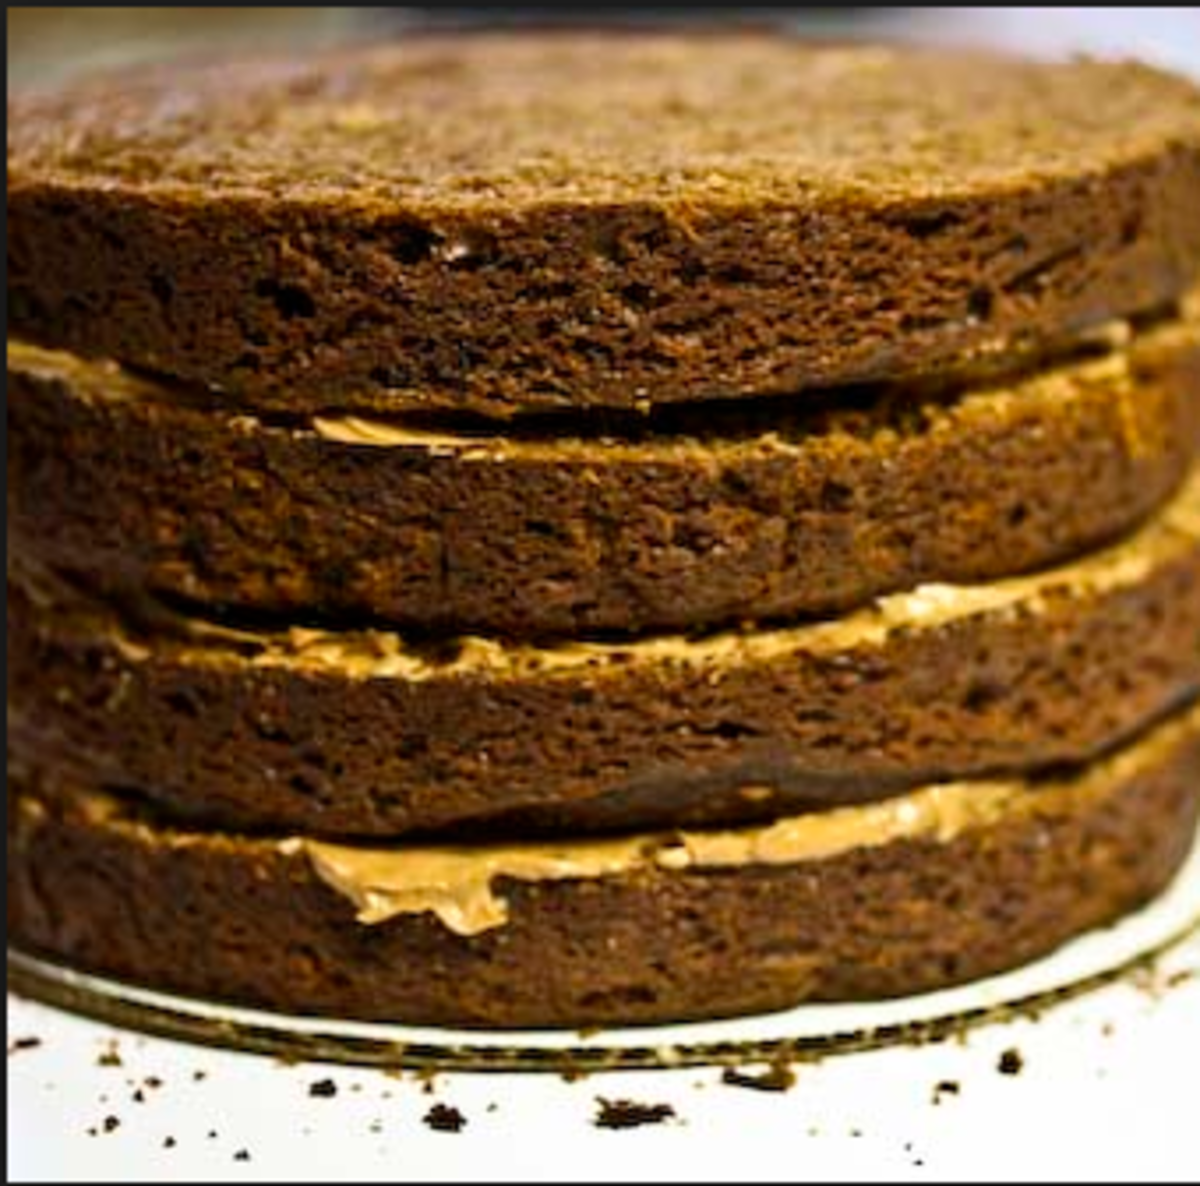 This is a cake on a cardboard round. If you were going to use this cake for stacking, after you frost it you would need to cut down the board to be the exact same size as the cake.